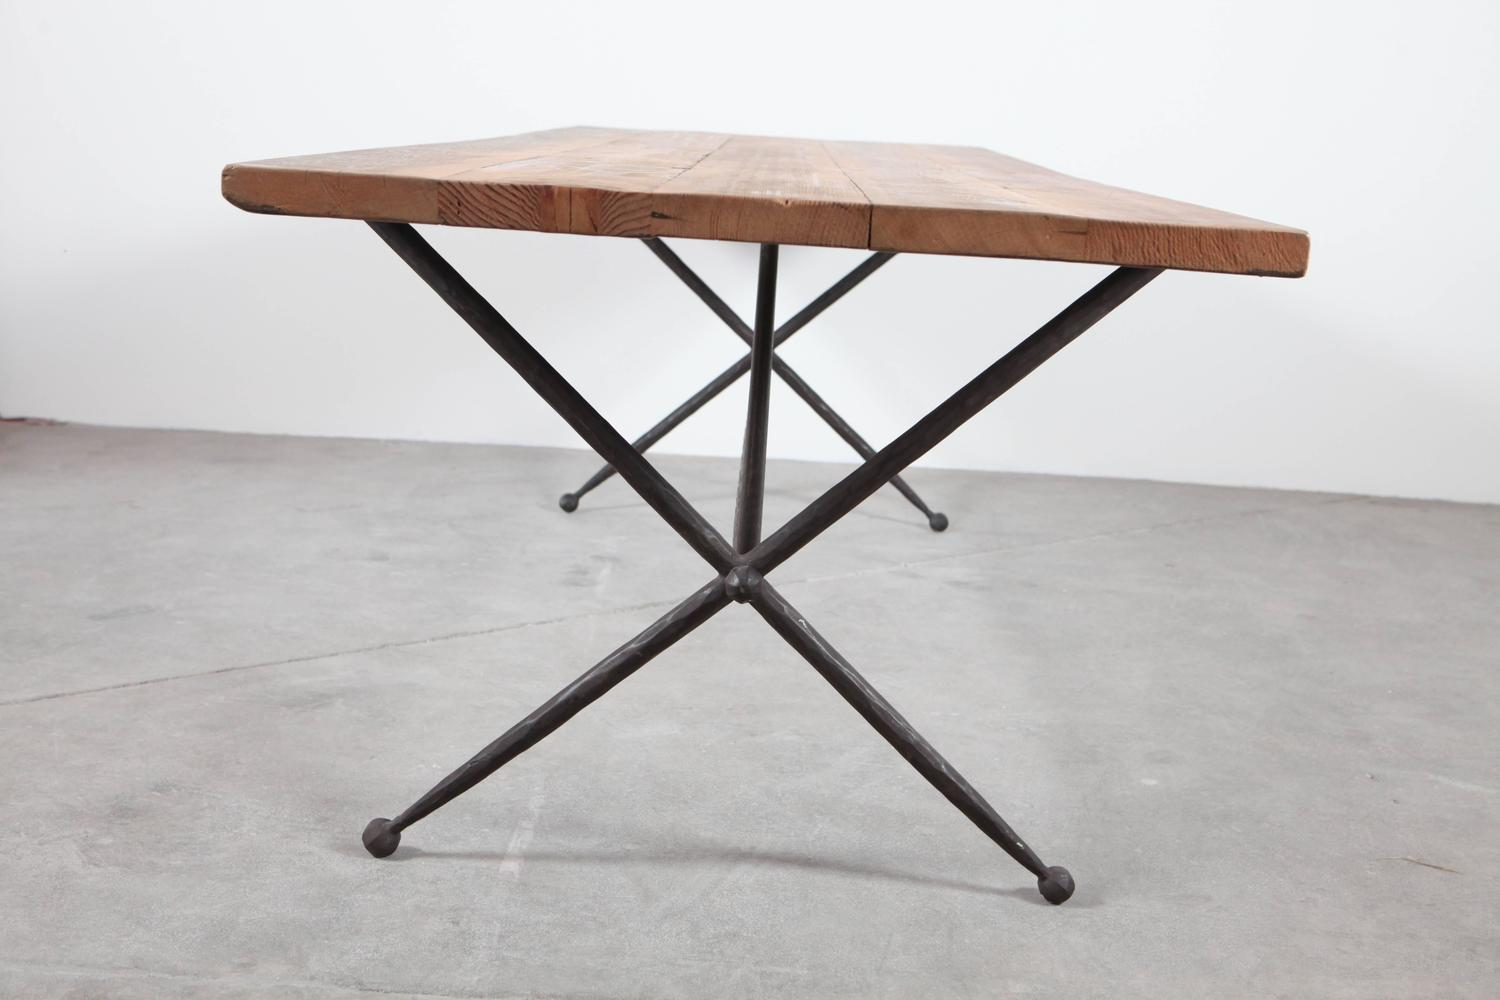 Long Iron X Base quotJacksquot Dining Table with Reclaimed Wood  : IMG0275z from www.1stdibs.com size 1500 x 1000 jpeg 85kB